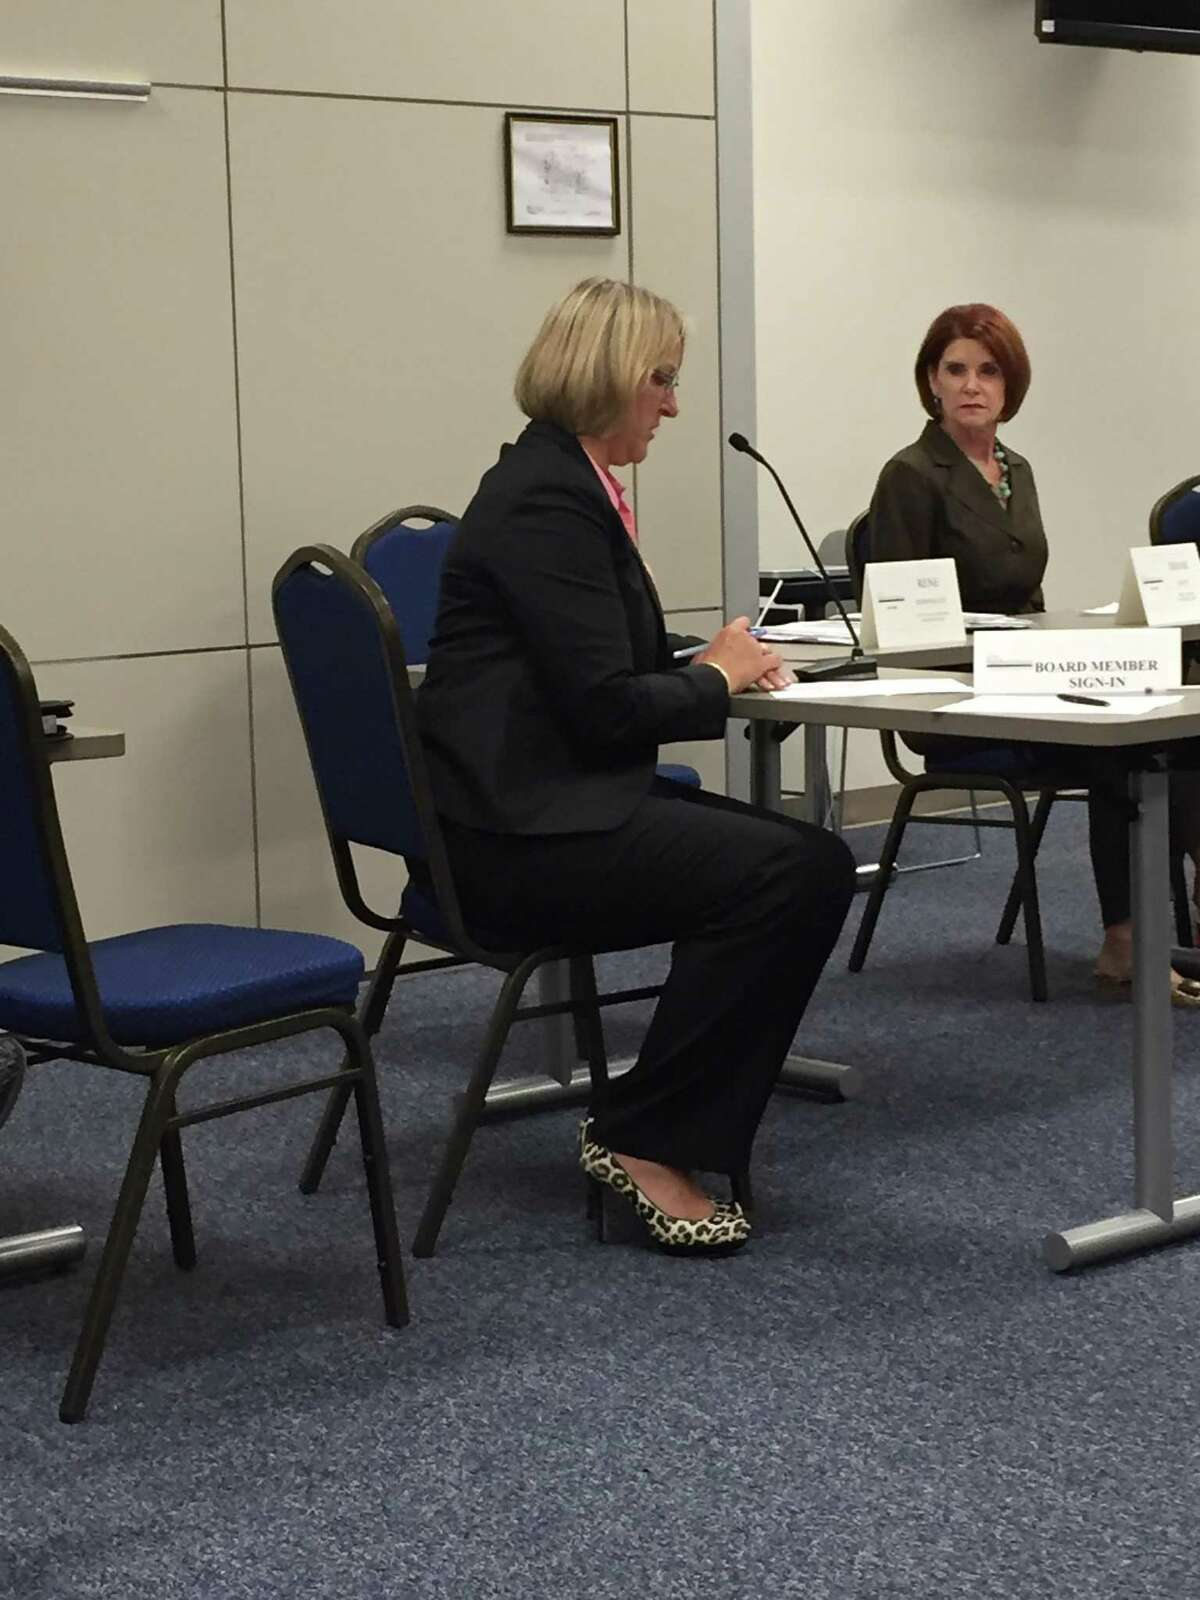 Gail Hathaway, left, speaks to the Workforce Solutions Alamo board at the start of a board meeting in November 2016. The board fired Hathaway, who then sued the organization for breach of contract. The suit was recently settled.